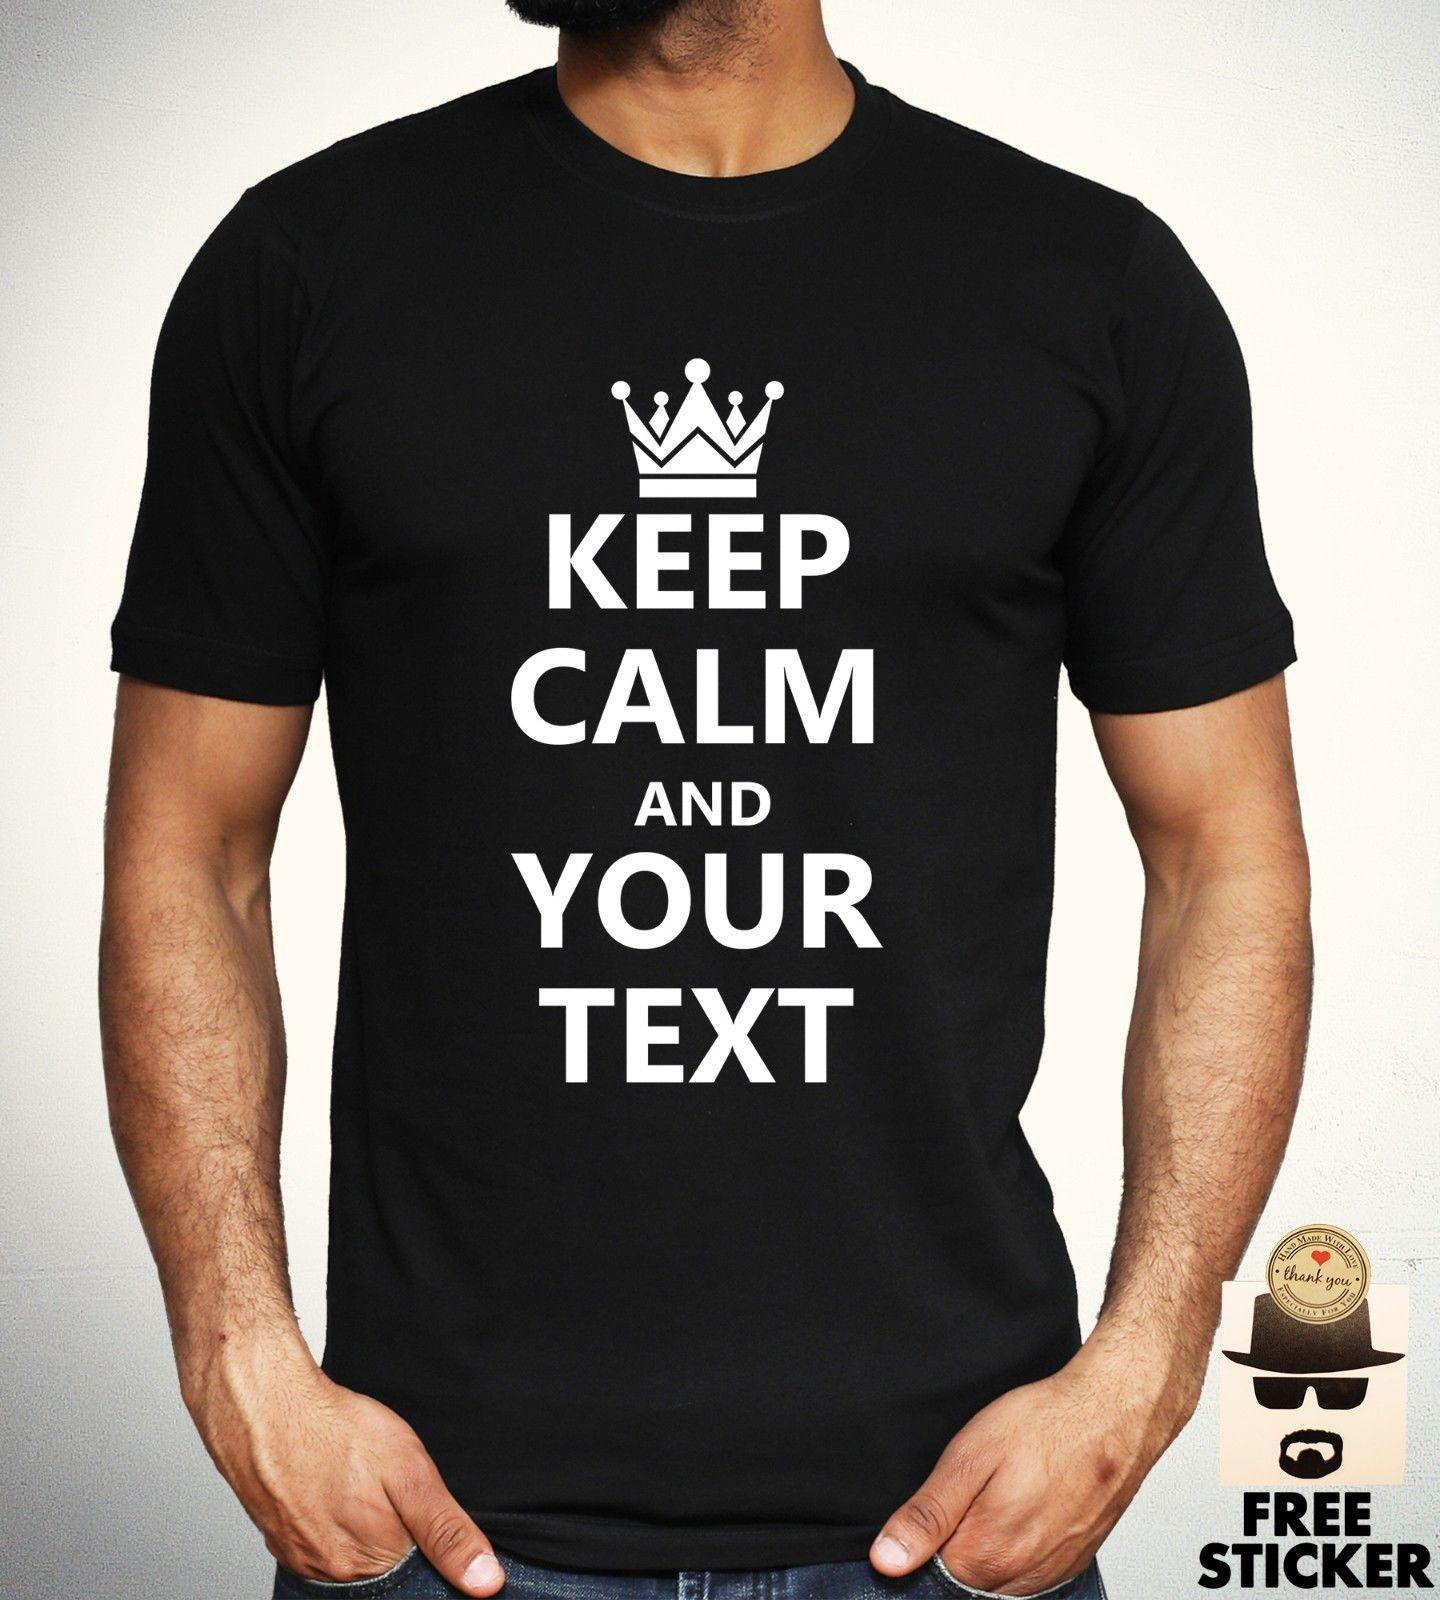 012319887 Keep Calm And T shirt Personalize Customize Tee Fashion Gift Present Top  Mens Funny free shipping Unisex tee